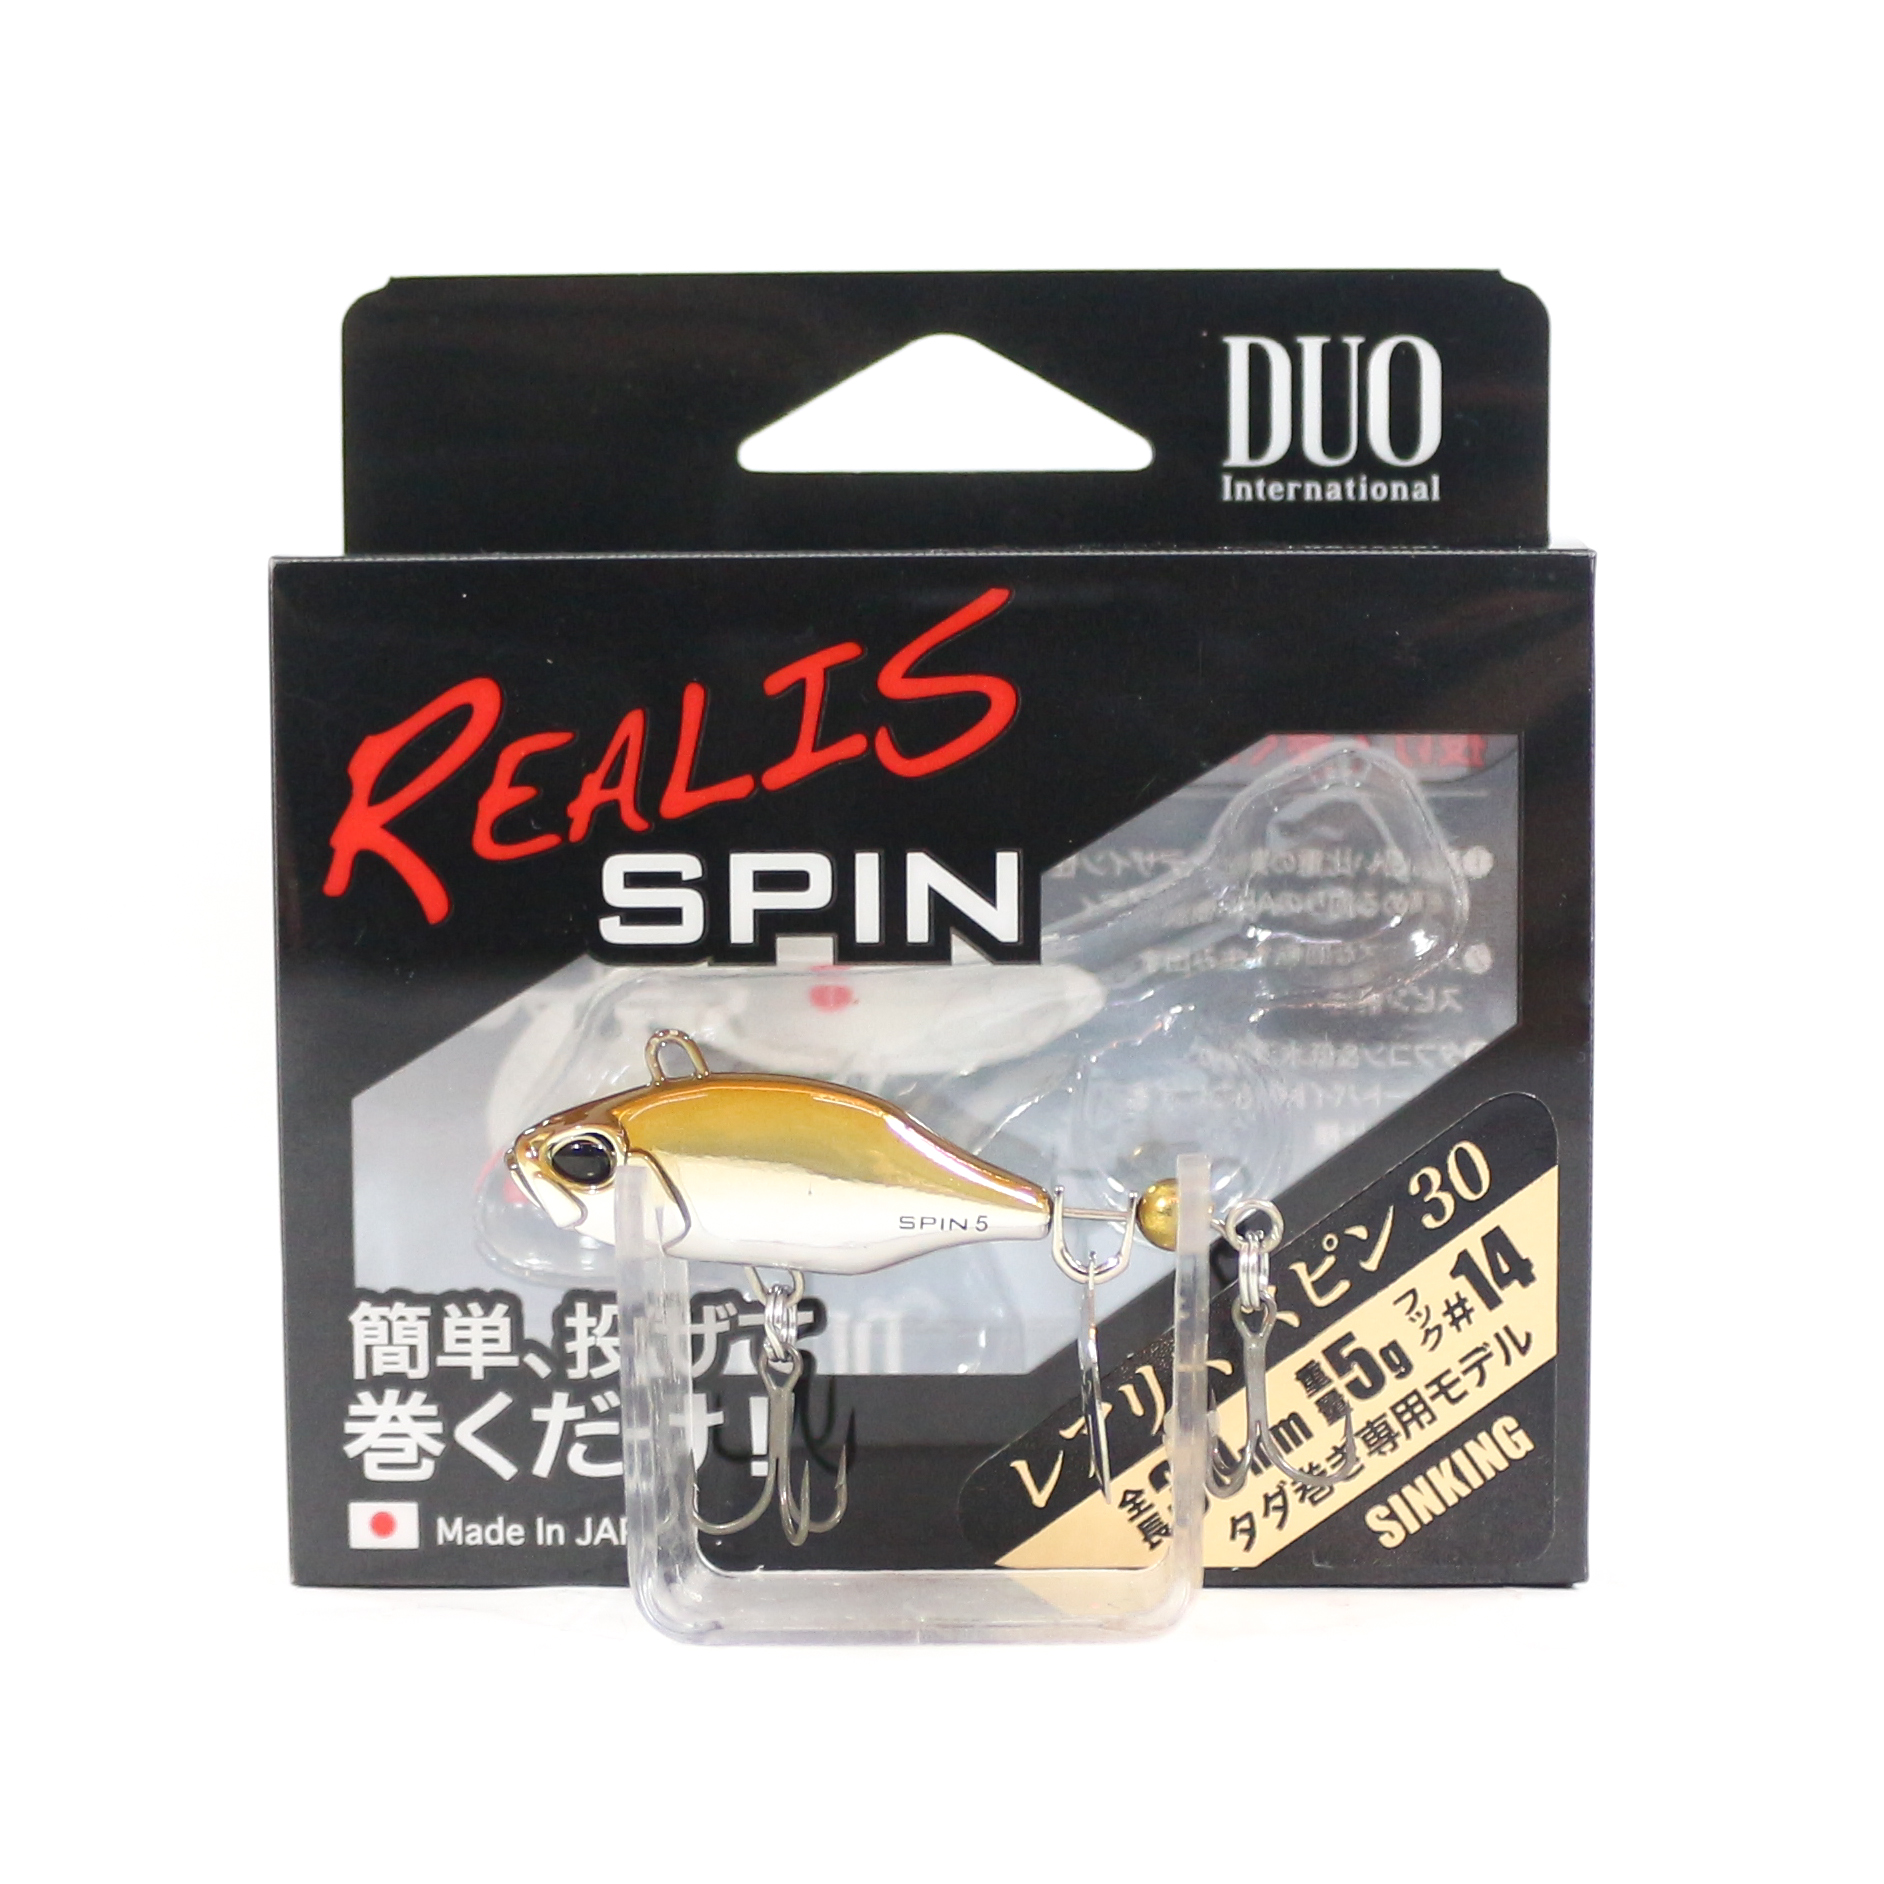 Duo Realis Spin 5 grams Spinner Bait Lure GSA3221 (0261)